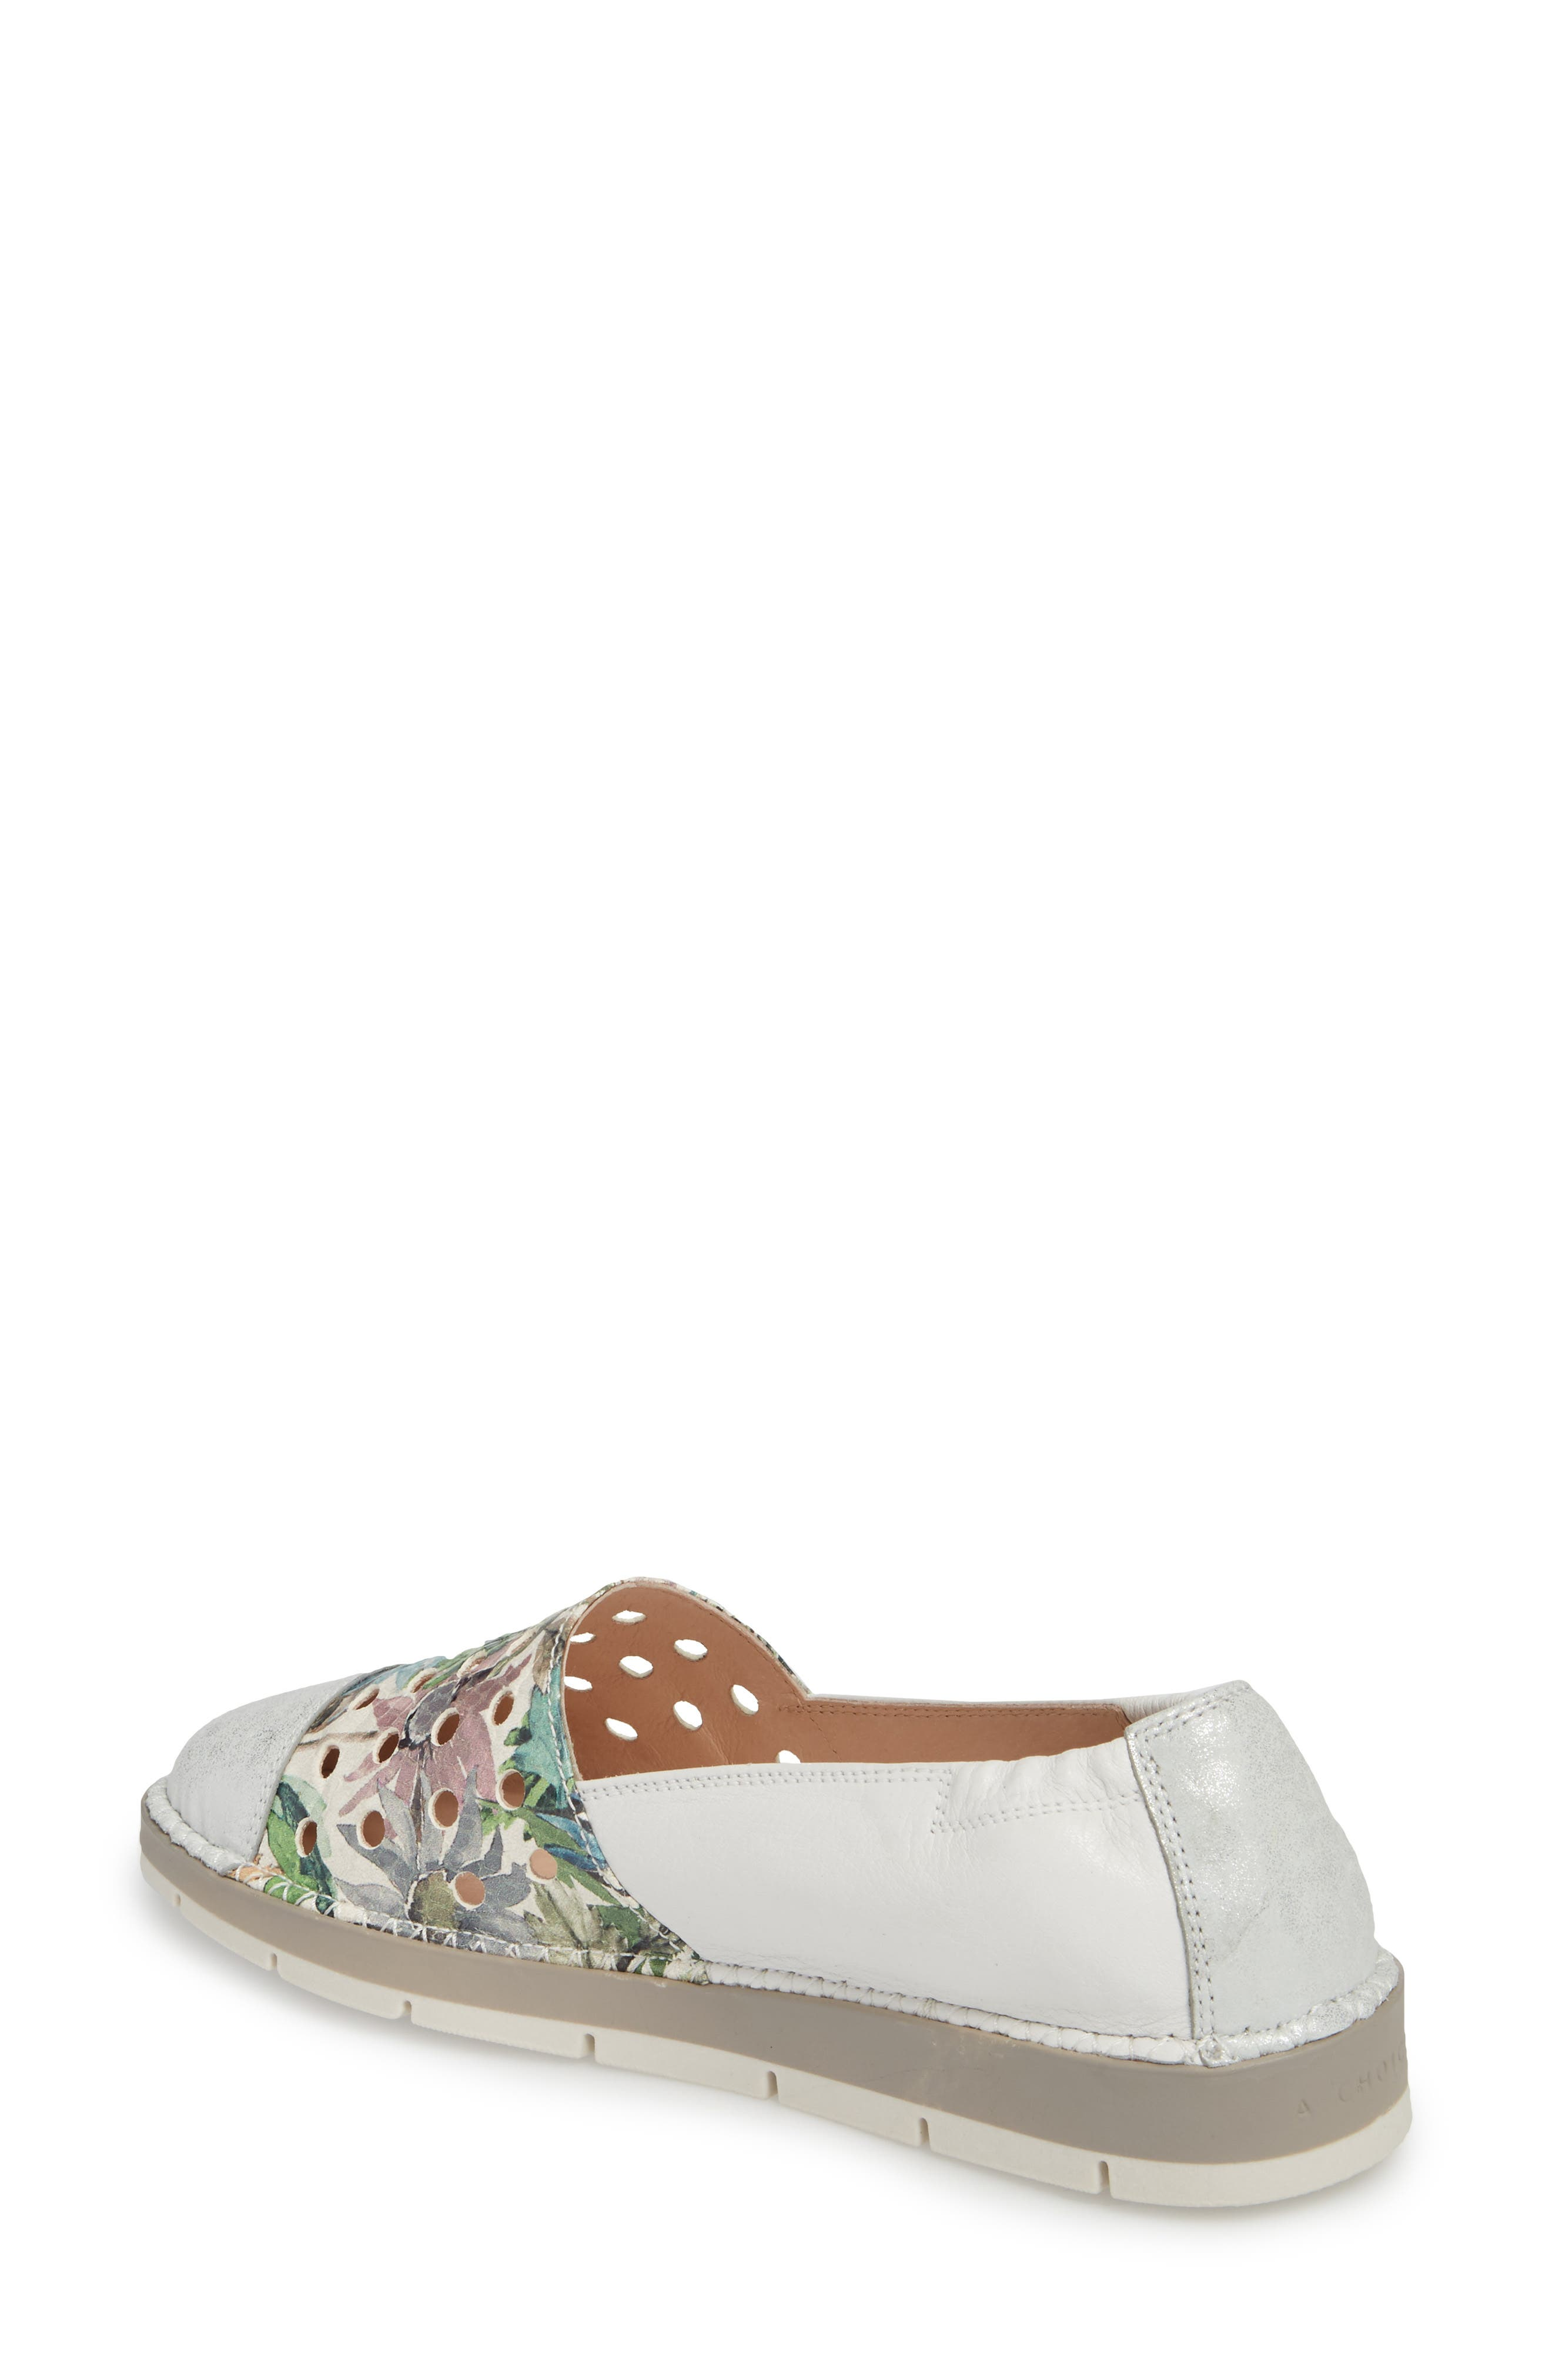 Maiko Flat,                             Alternate thumbnail 2, color,                             STAR SILVER/ BLOSSOM LEATHER